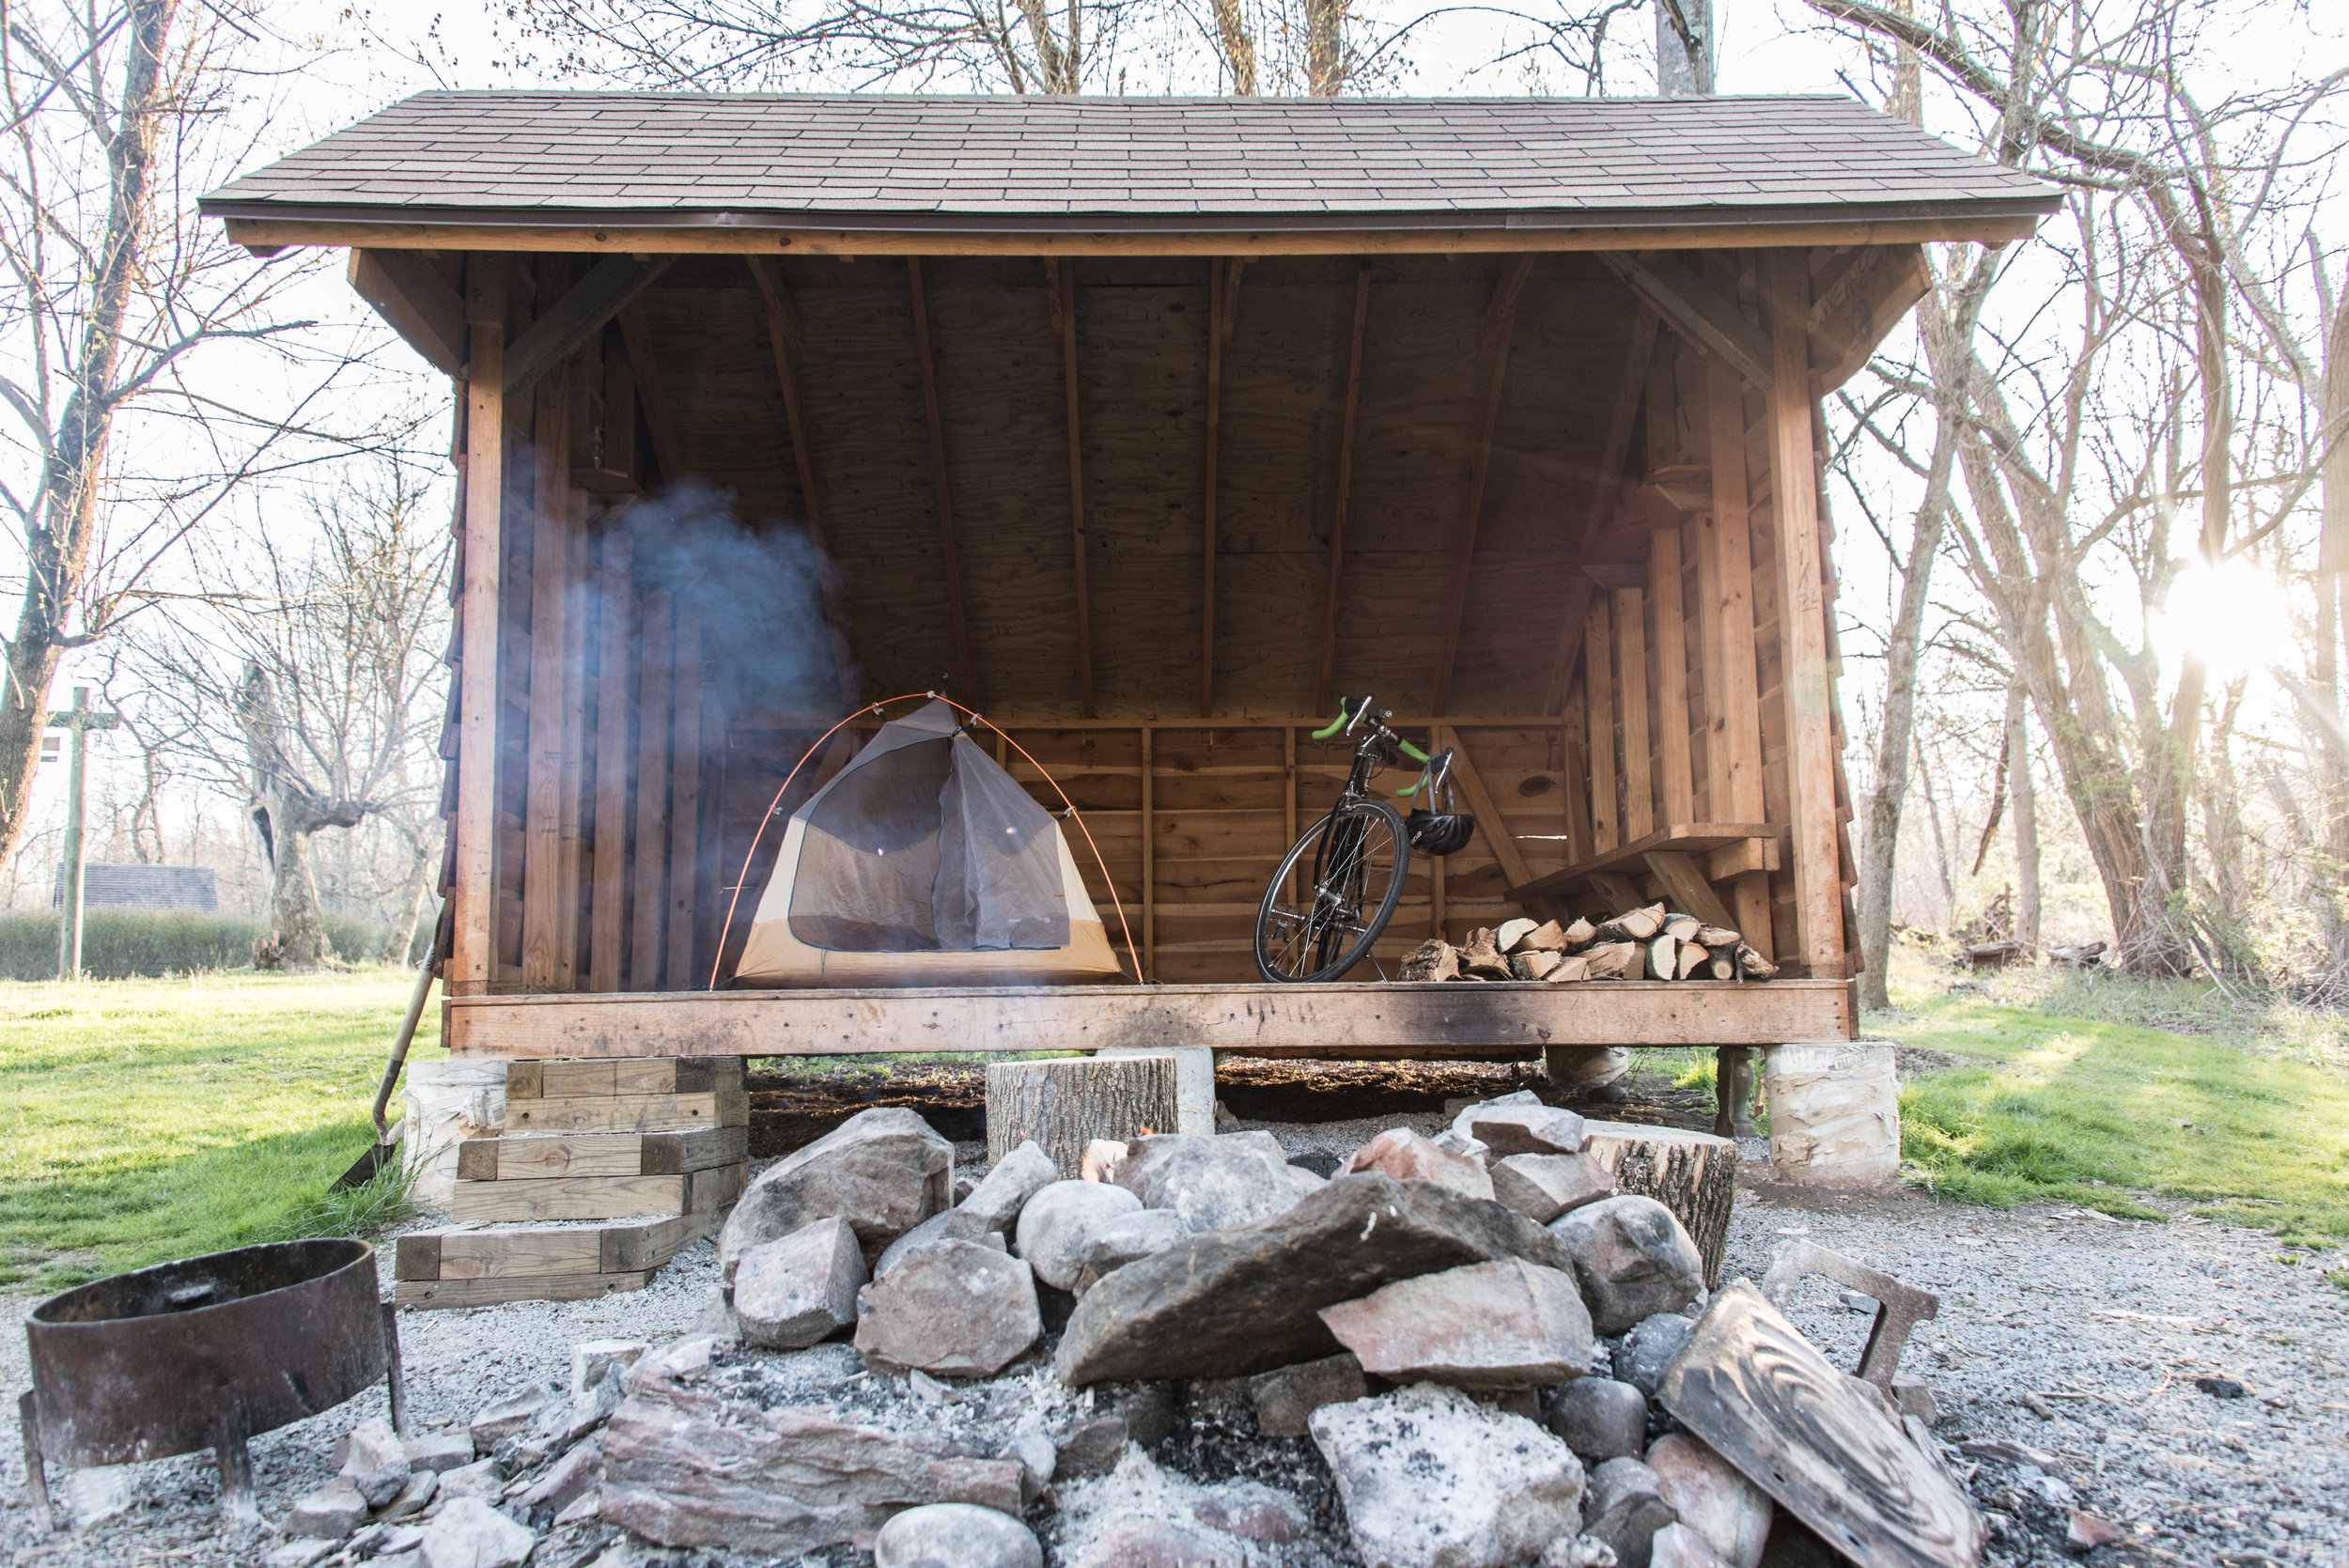 One of many free campsites along the Great Allegheny Passage and C&O Canal Towpath.